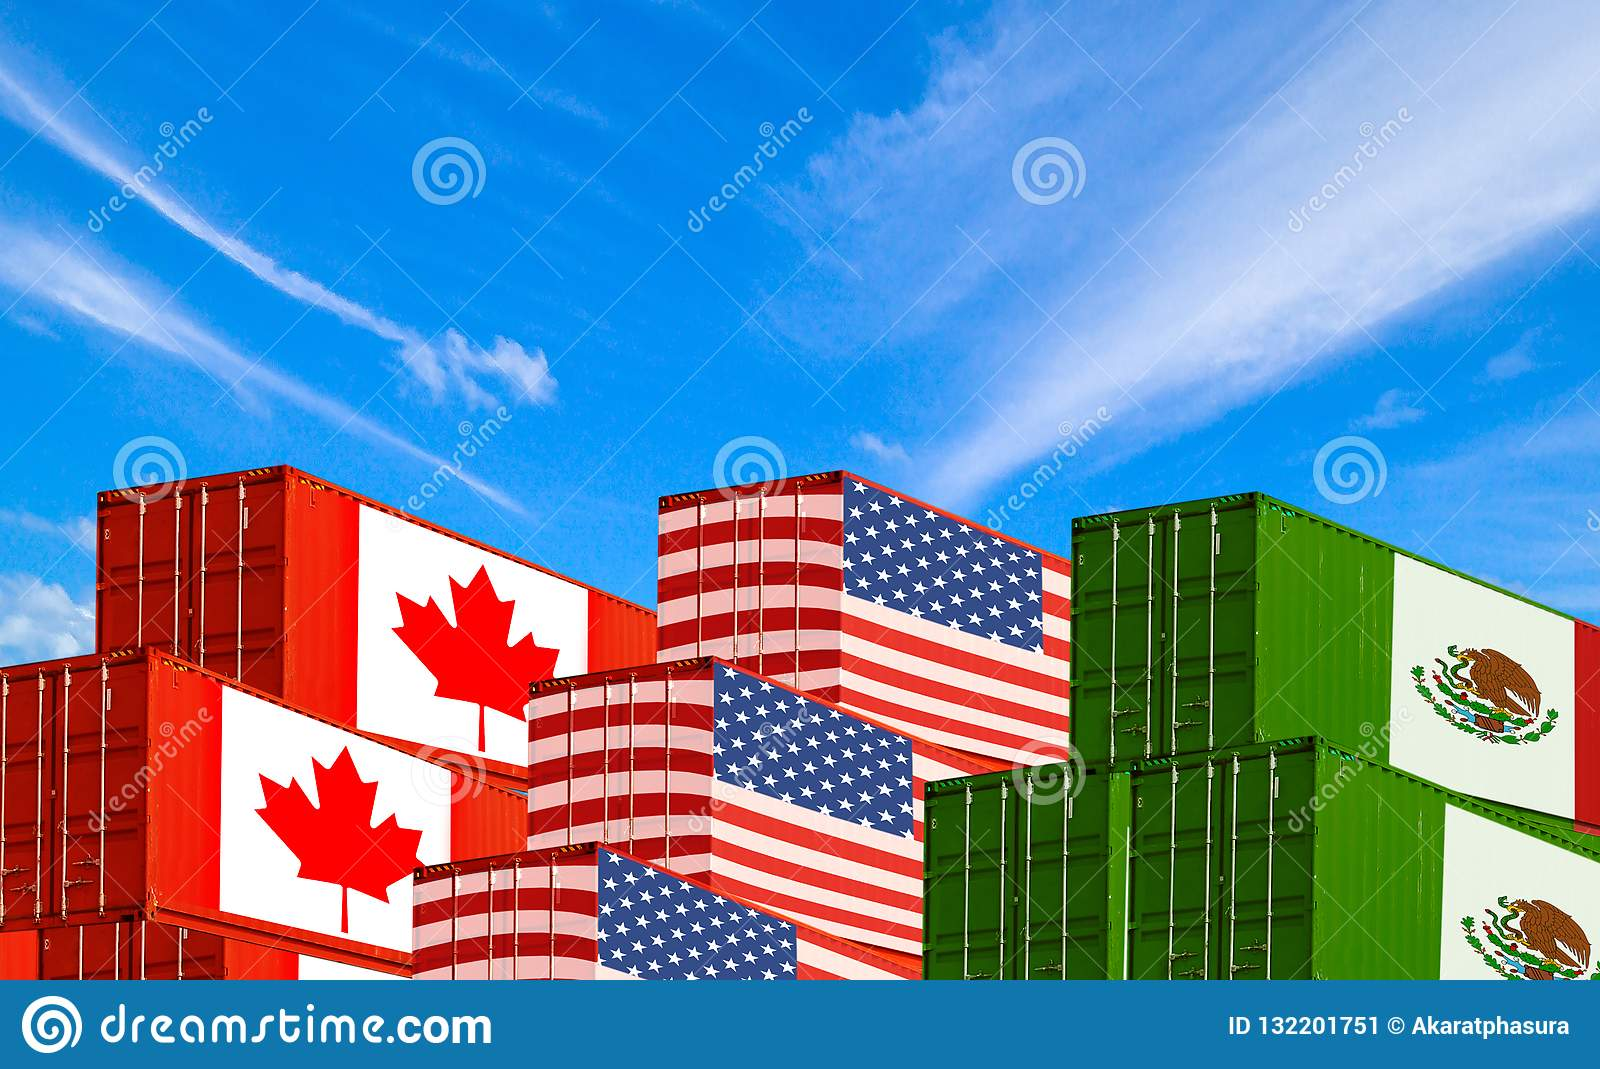 Concept of USMCA or the new NAFTA United States Mexico Canada agreement, trade deal and economic